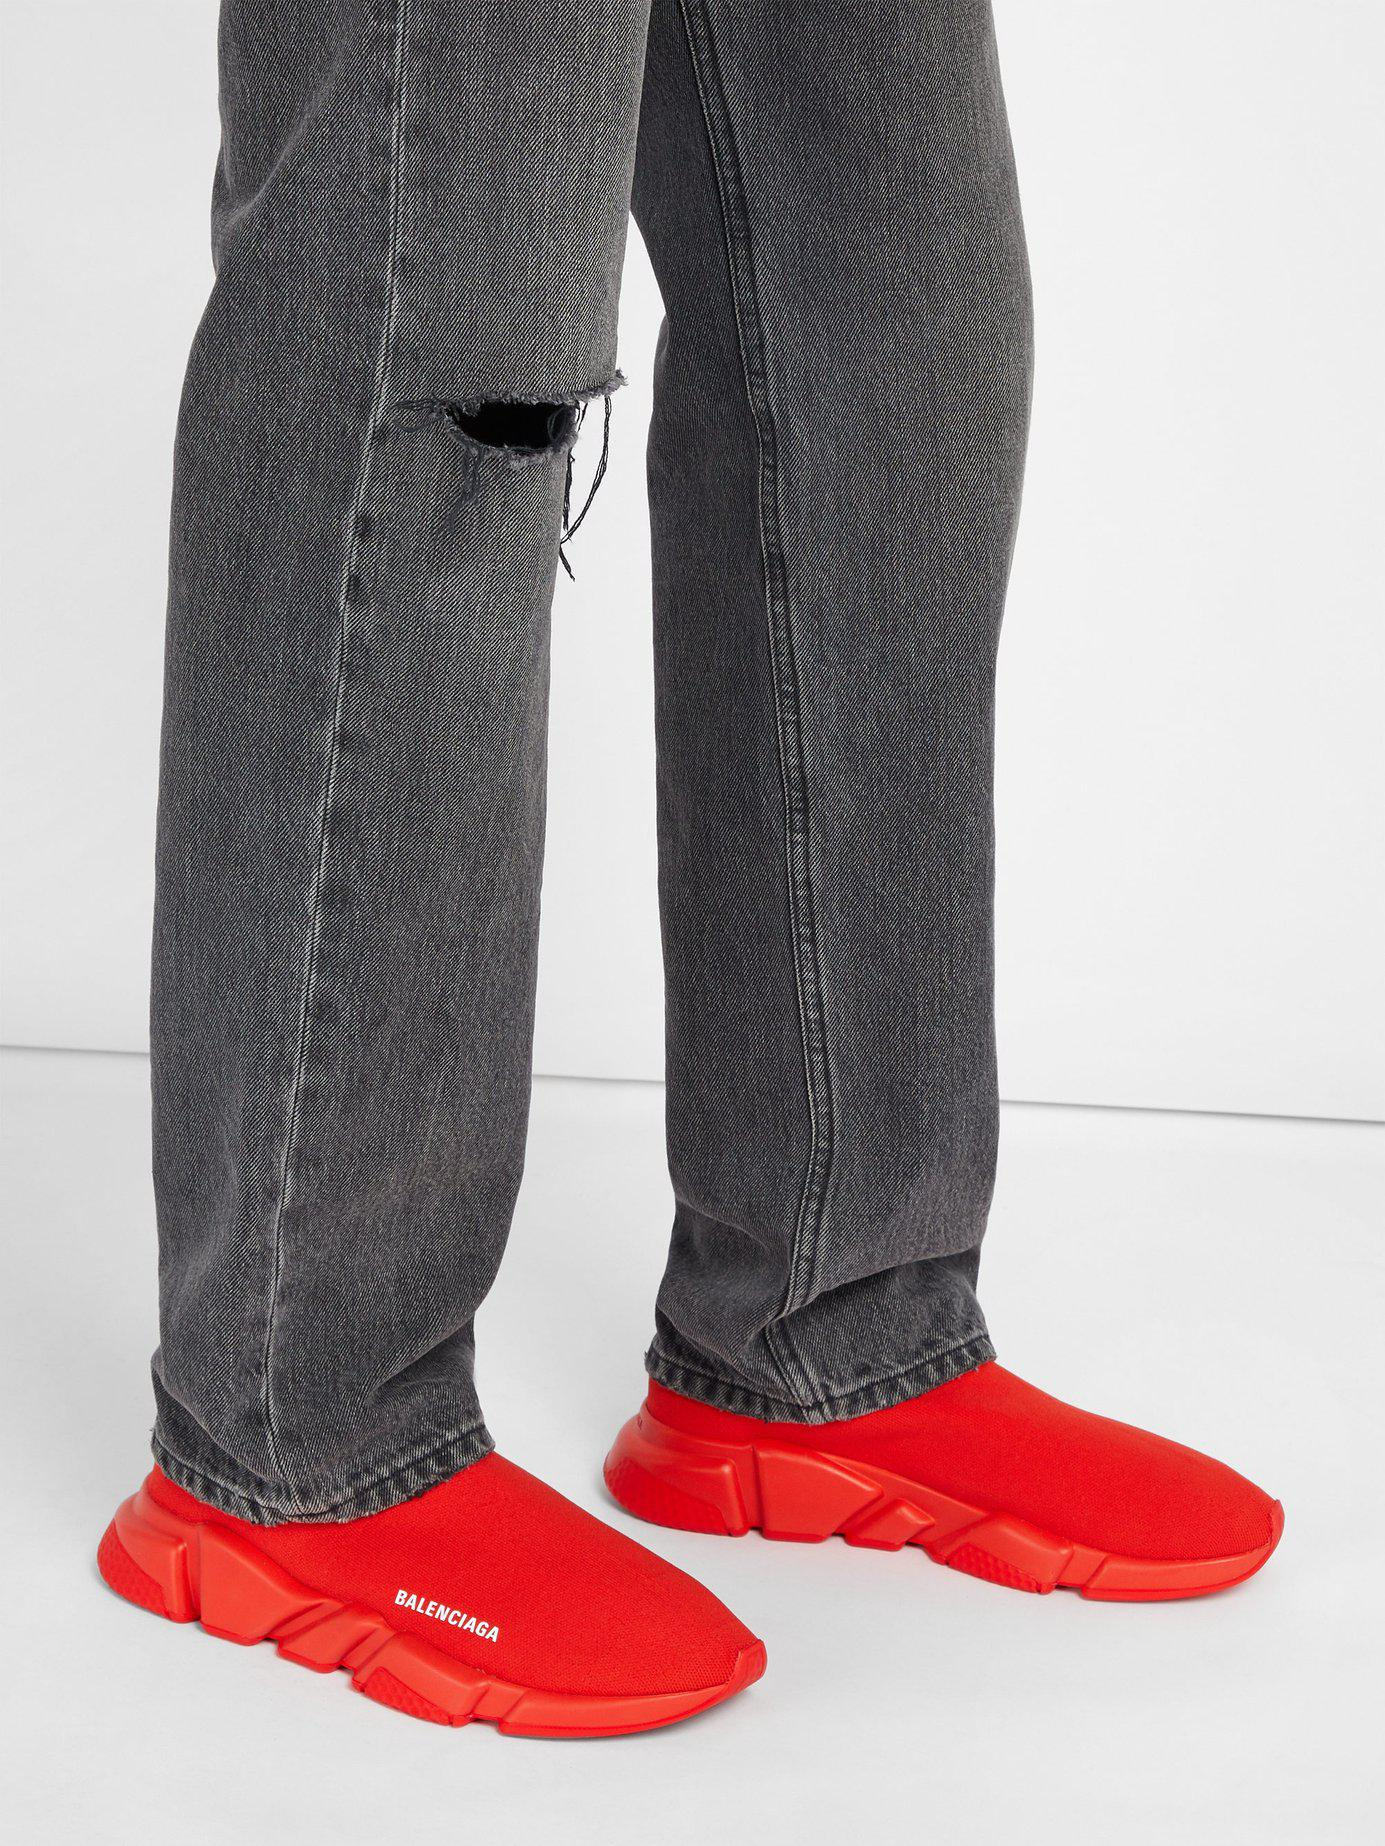 c83da2a0b8505 Lyst - Balenciaga Speed Sock Trainers in Red for Men - Save 20%